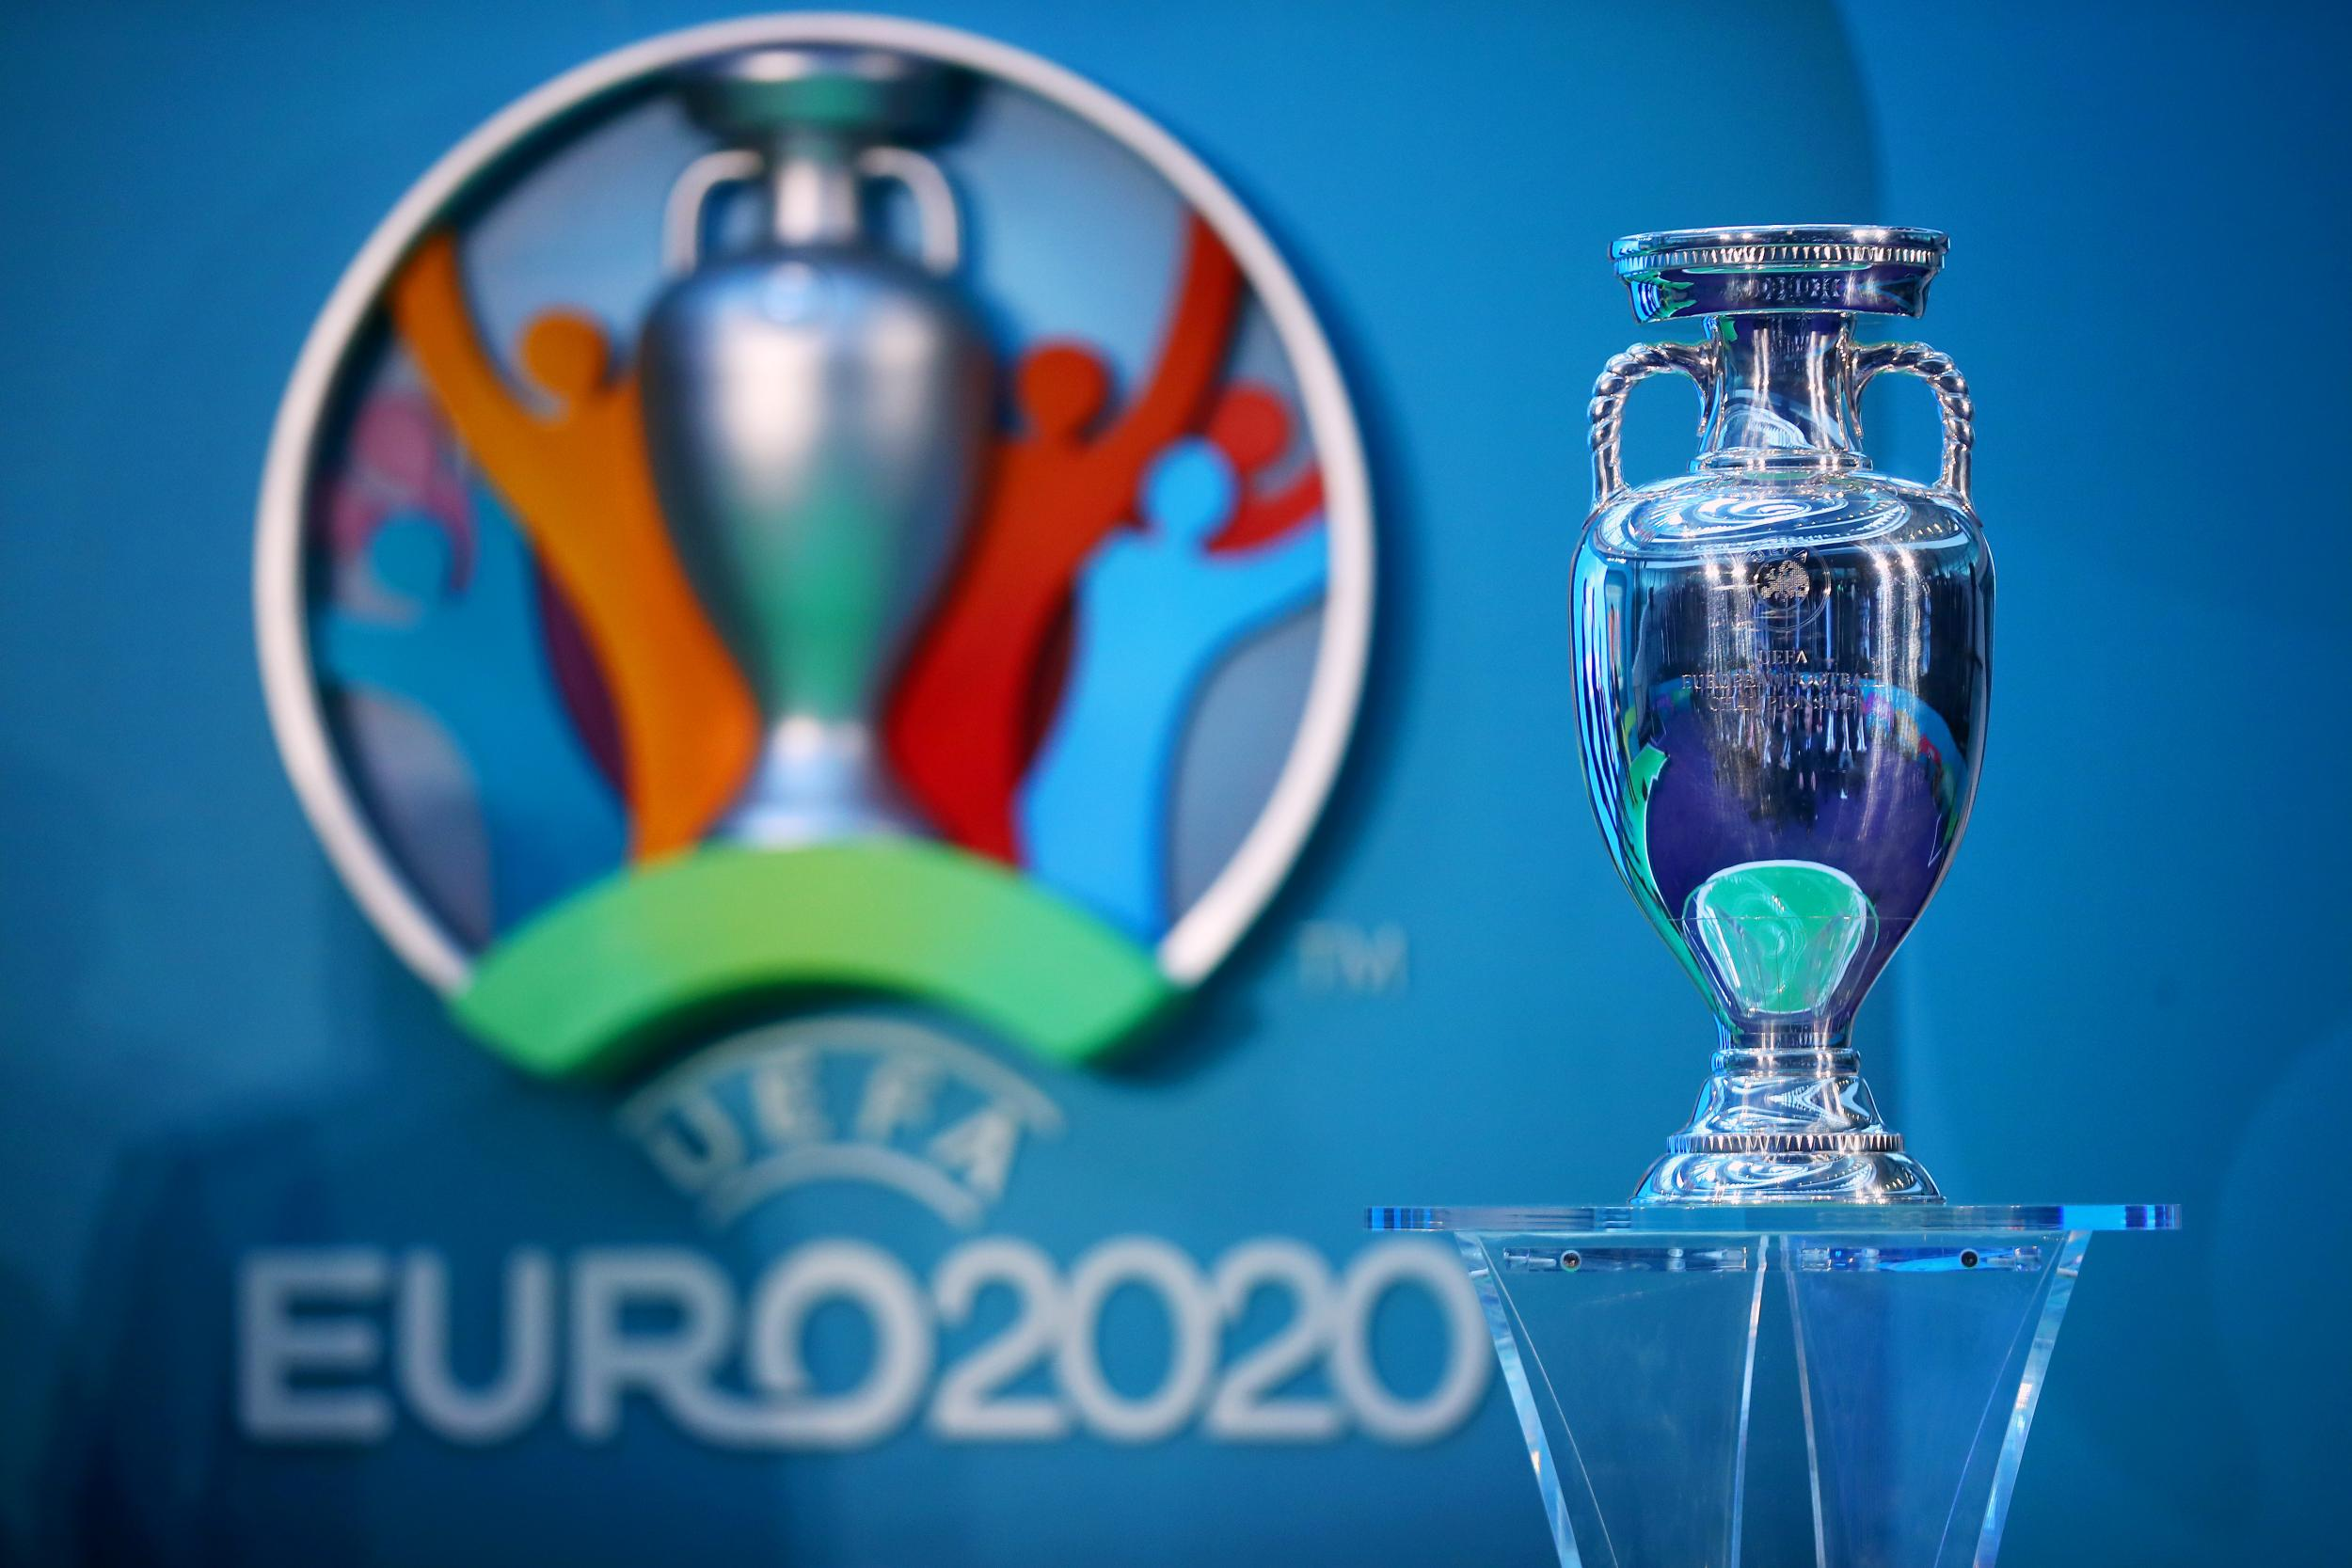 Euro 2020 draw: When is it, who has qualified, are England seeded and how does it work?